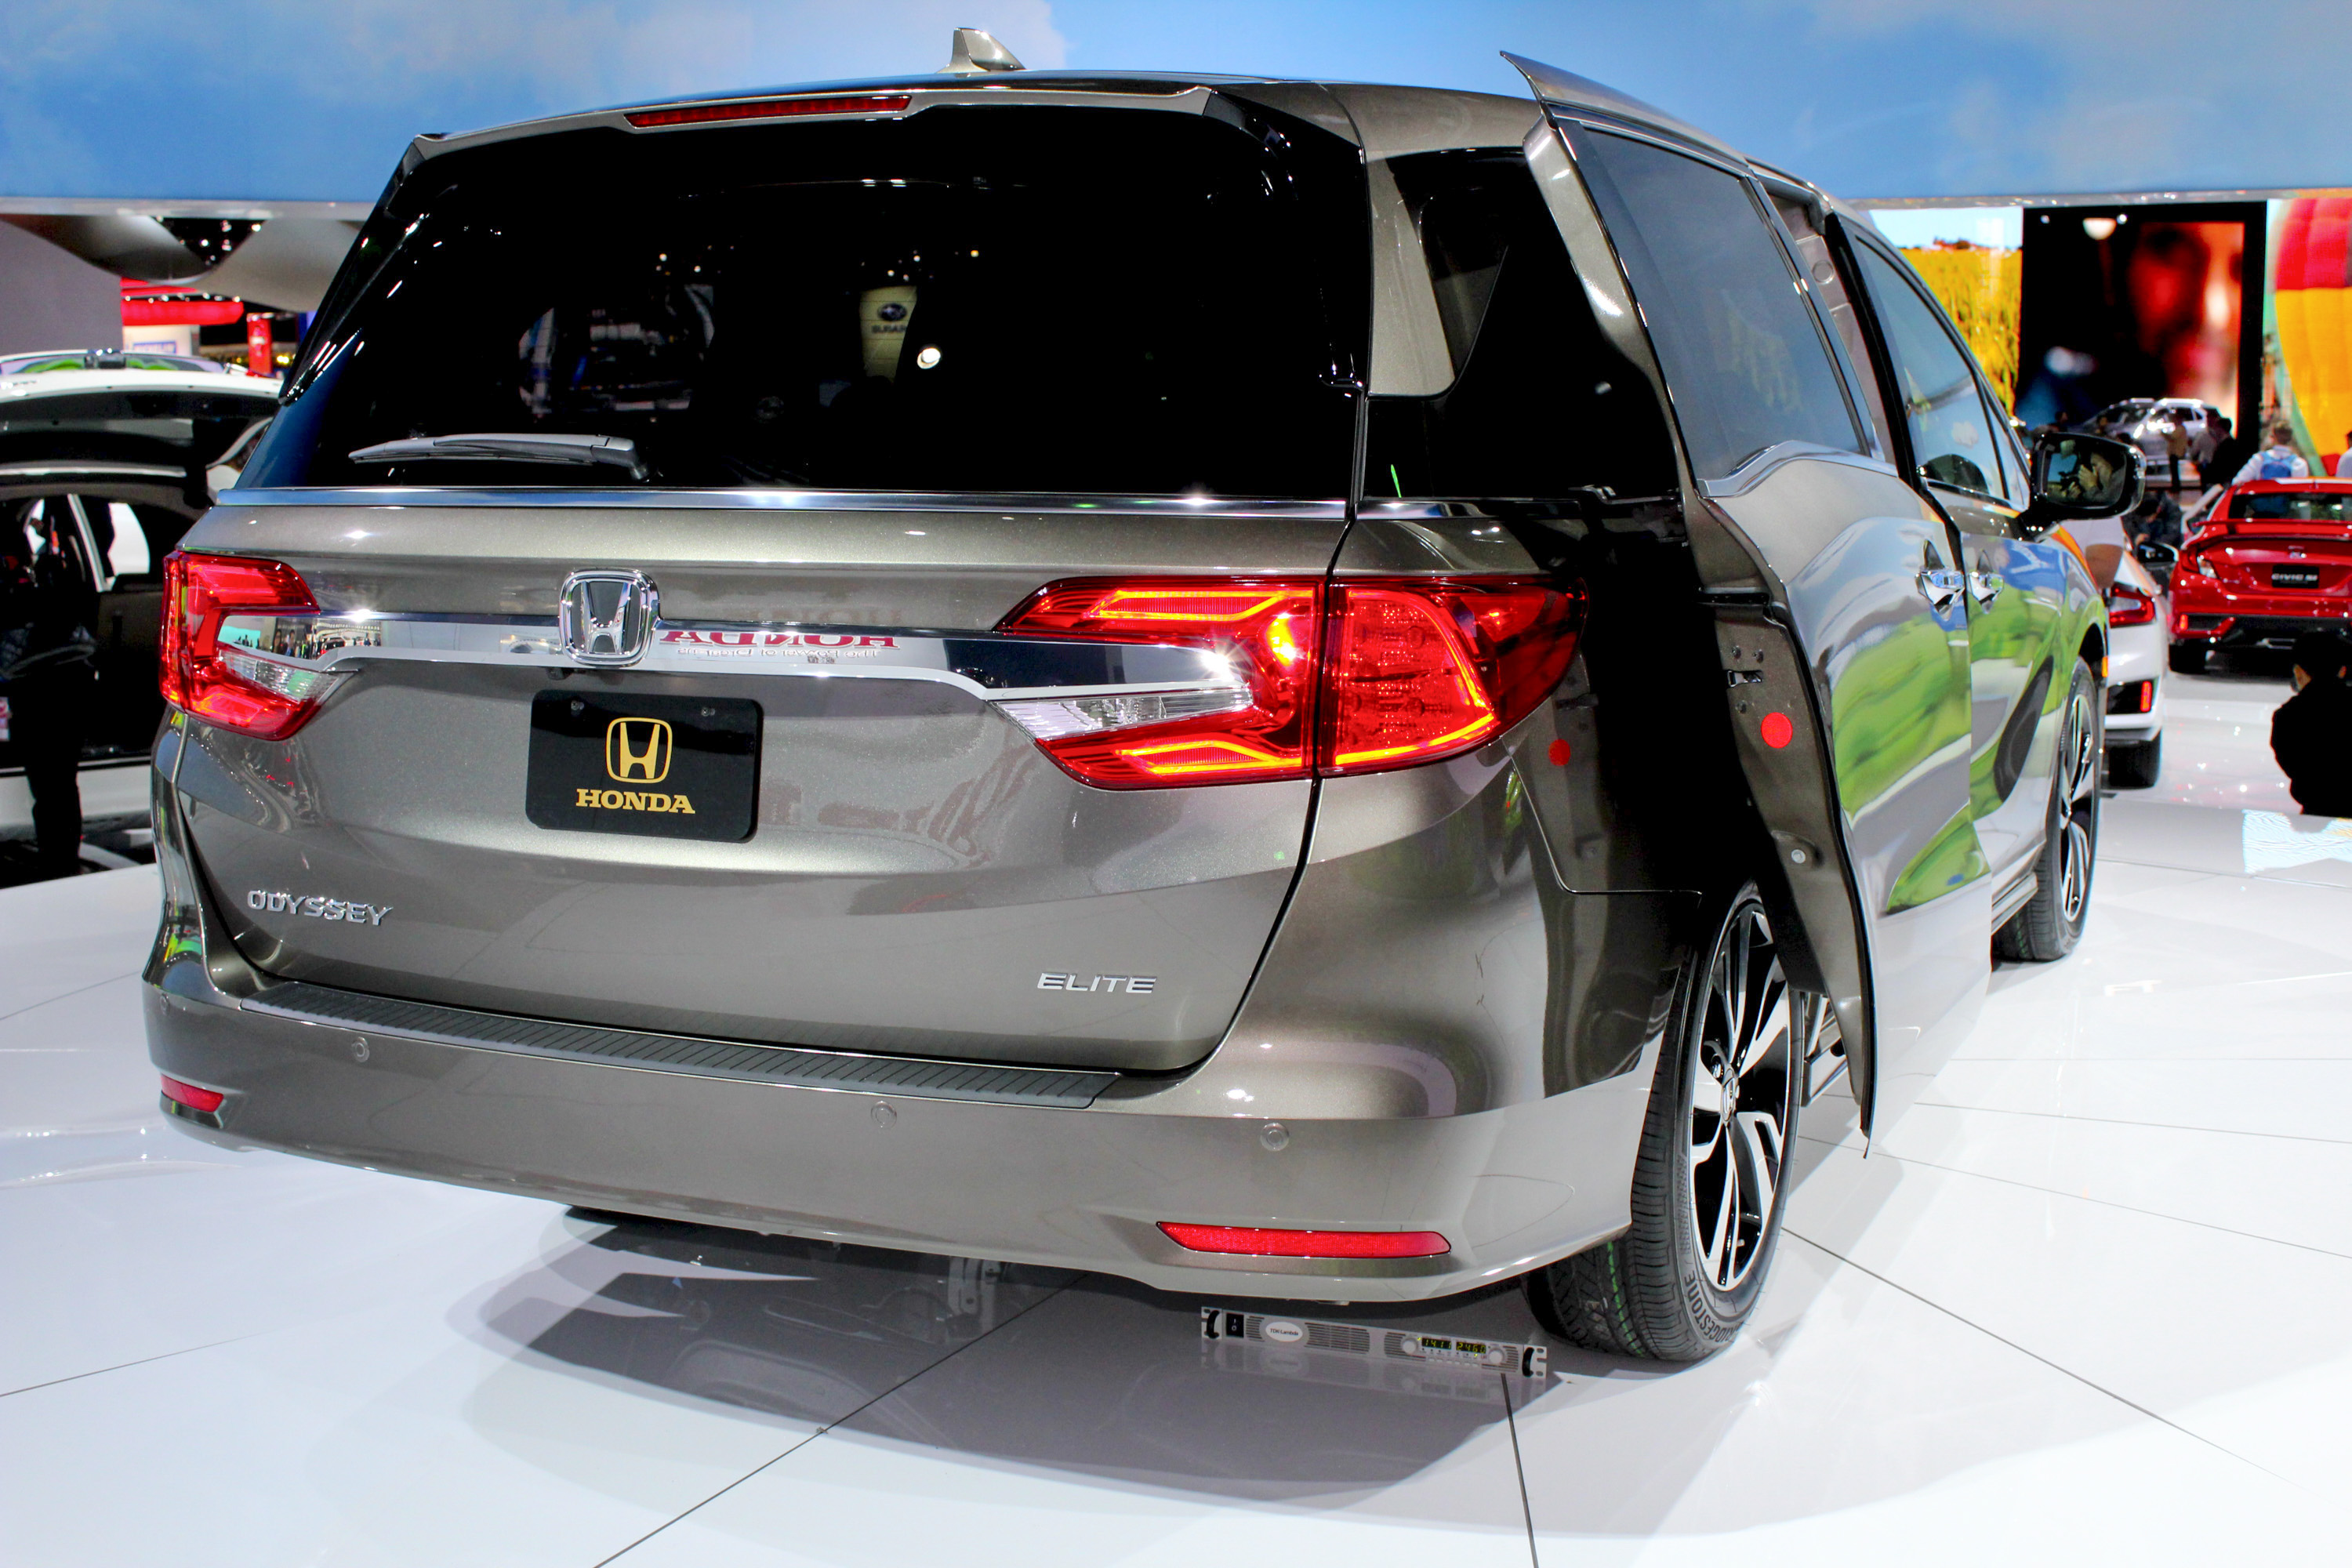 minivan the pacifica s how news live in chrysler odyssey detroit honda photos shows done it